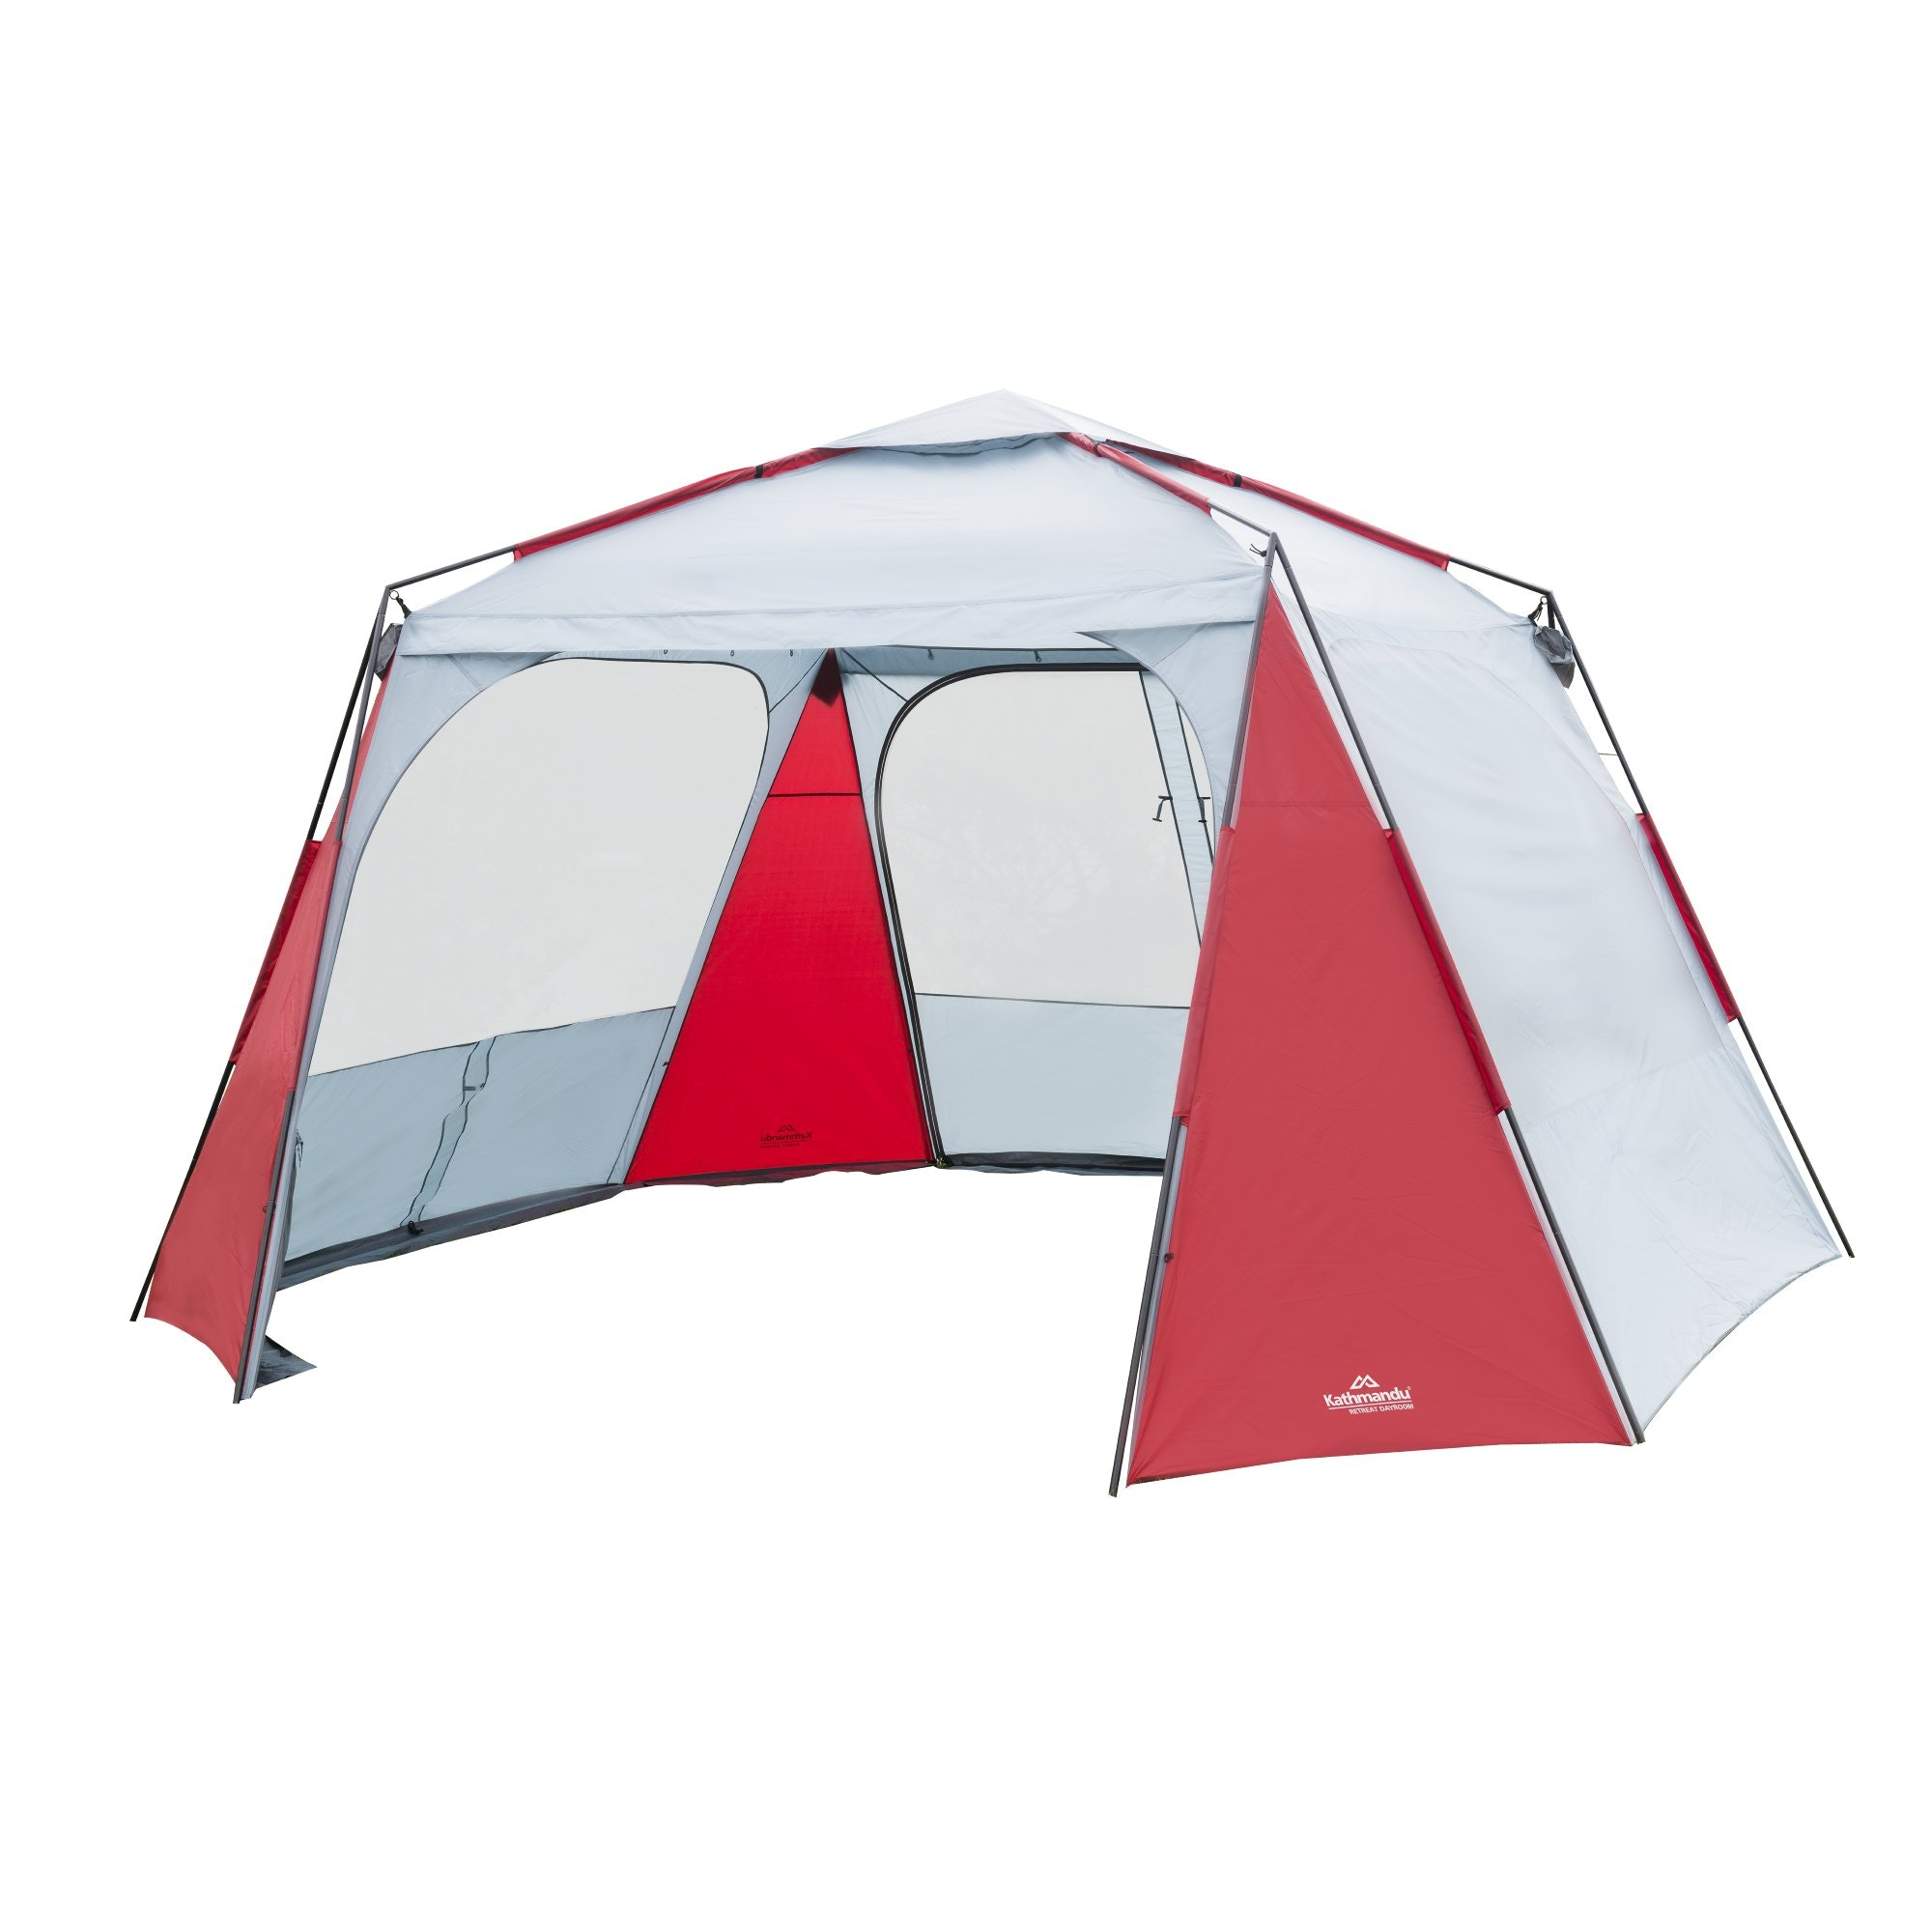 Cing Tents At Anaconda Including Family Swag Hiking More  sc 1 st  Best Tent 2018 & Stockman 12 Person Cabin Tent - Best Tent 2018